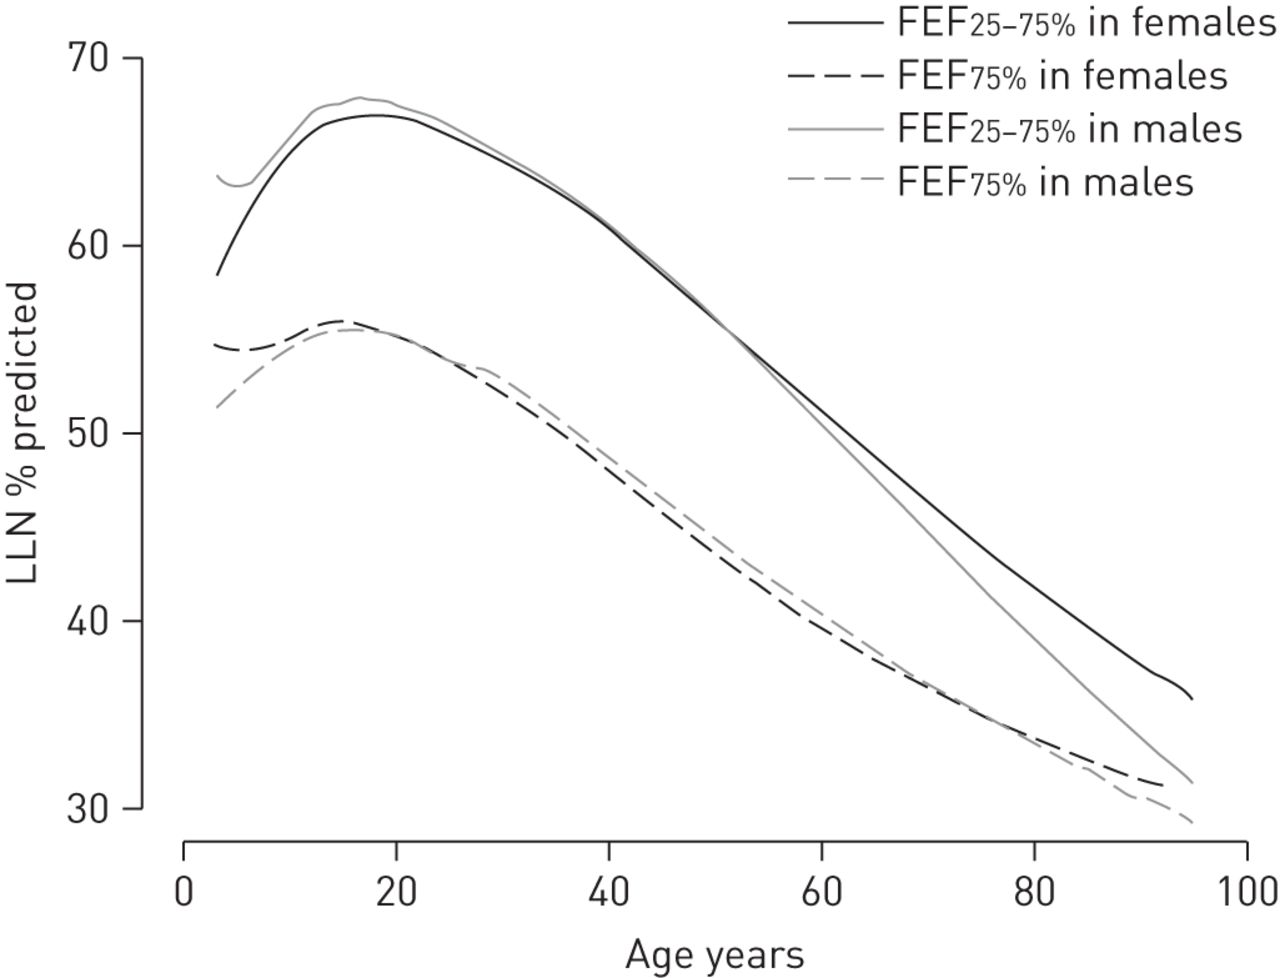 Measurement of fef2575 and fef75 does not contribute to clinical download figure geenschuldenfo Gallery